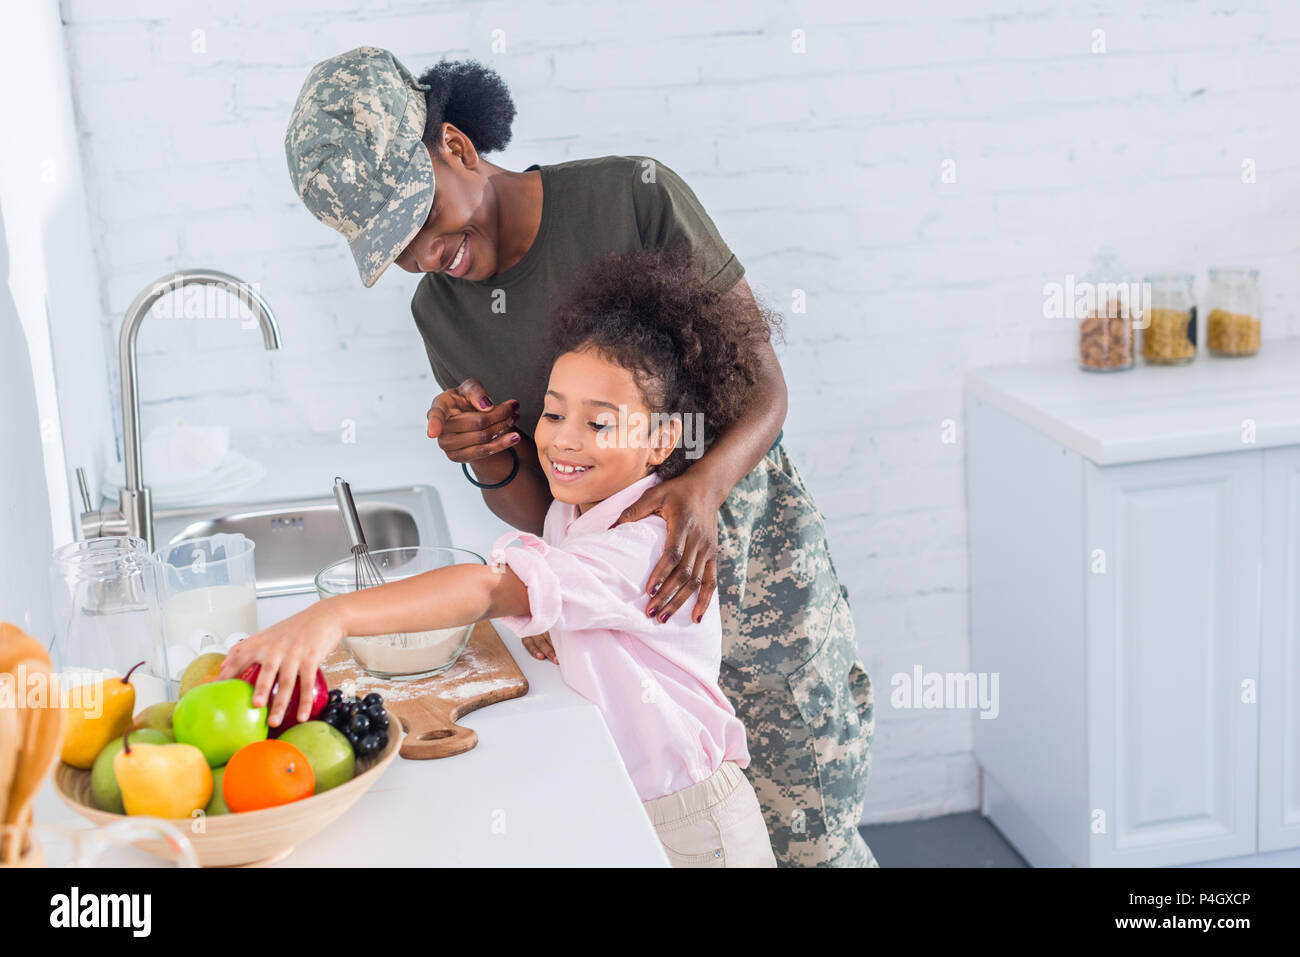 Mother soldier and african american child cooking together - Stock Image